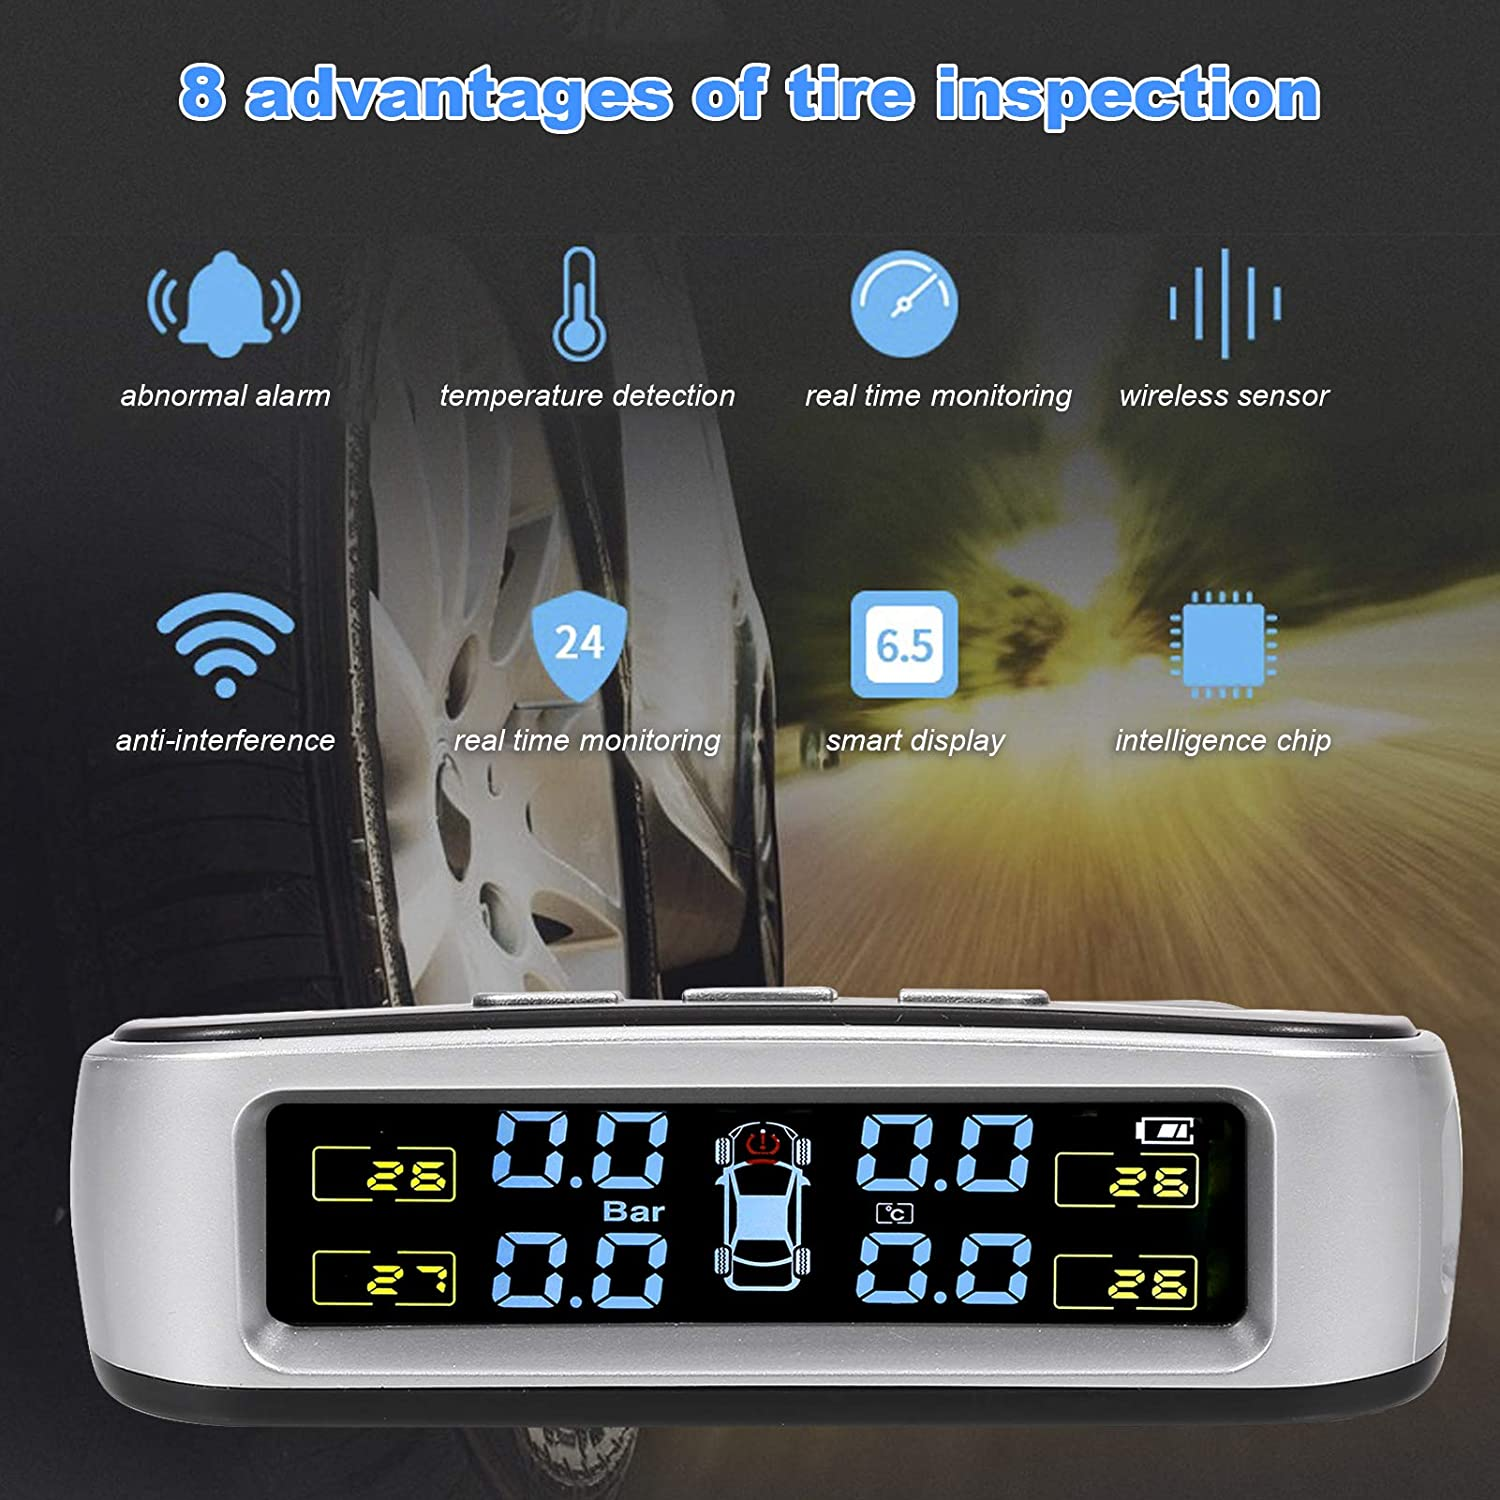 LED Display and Sound Warning KKmoon Car Reverse Backup Radar System with Solar TPMS 2 in 1 Wireless Tire Pressure Monitoring System and Reversing Radar with 4 Parking Sensors